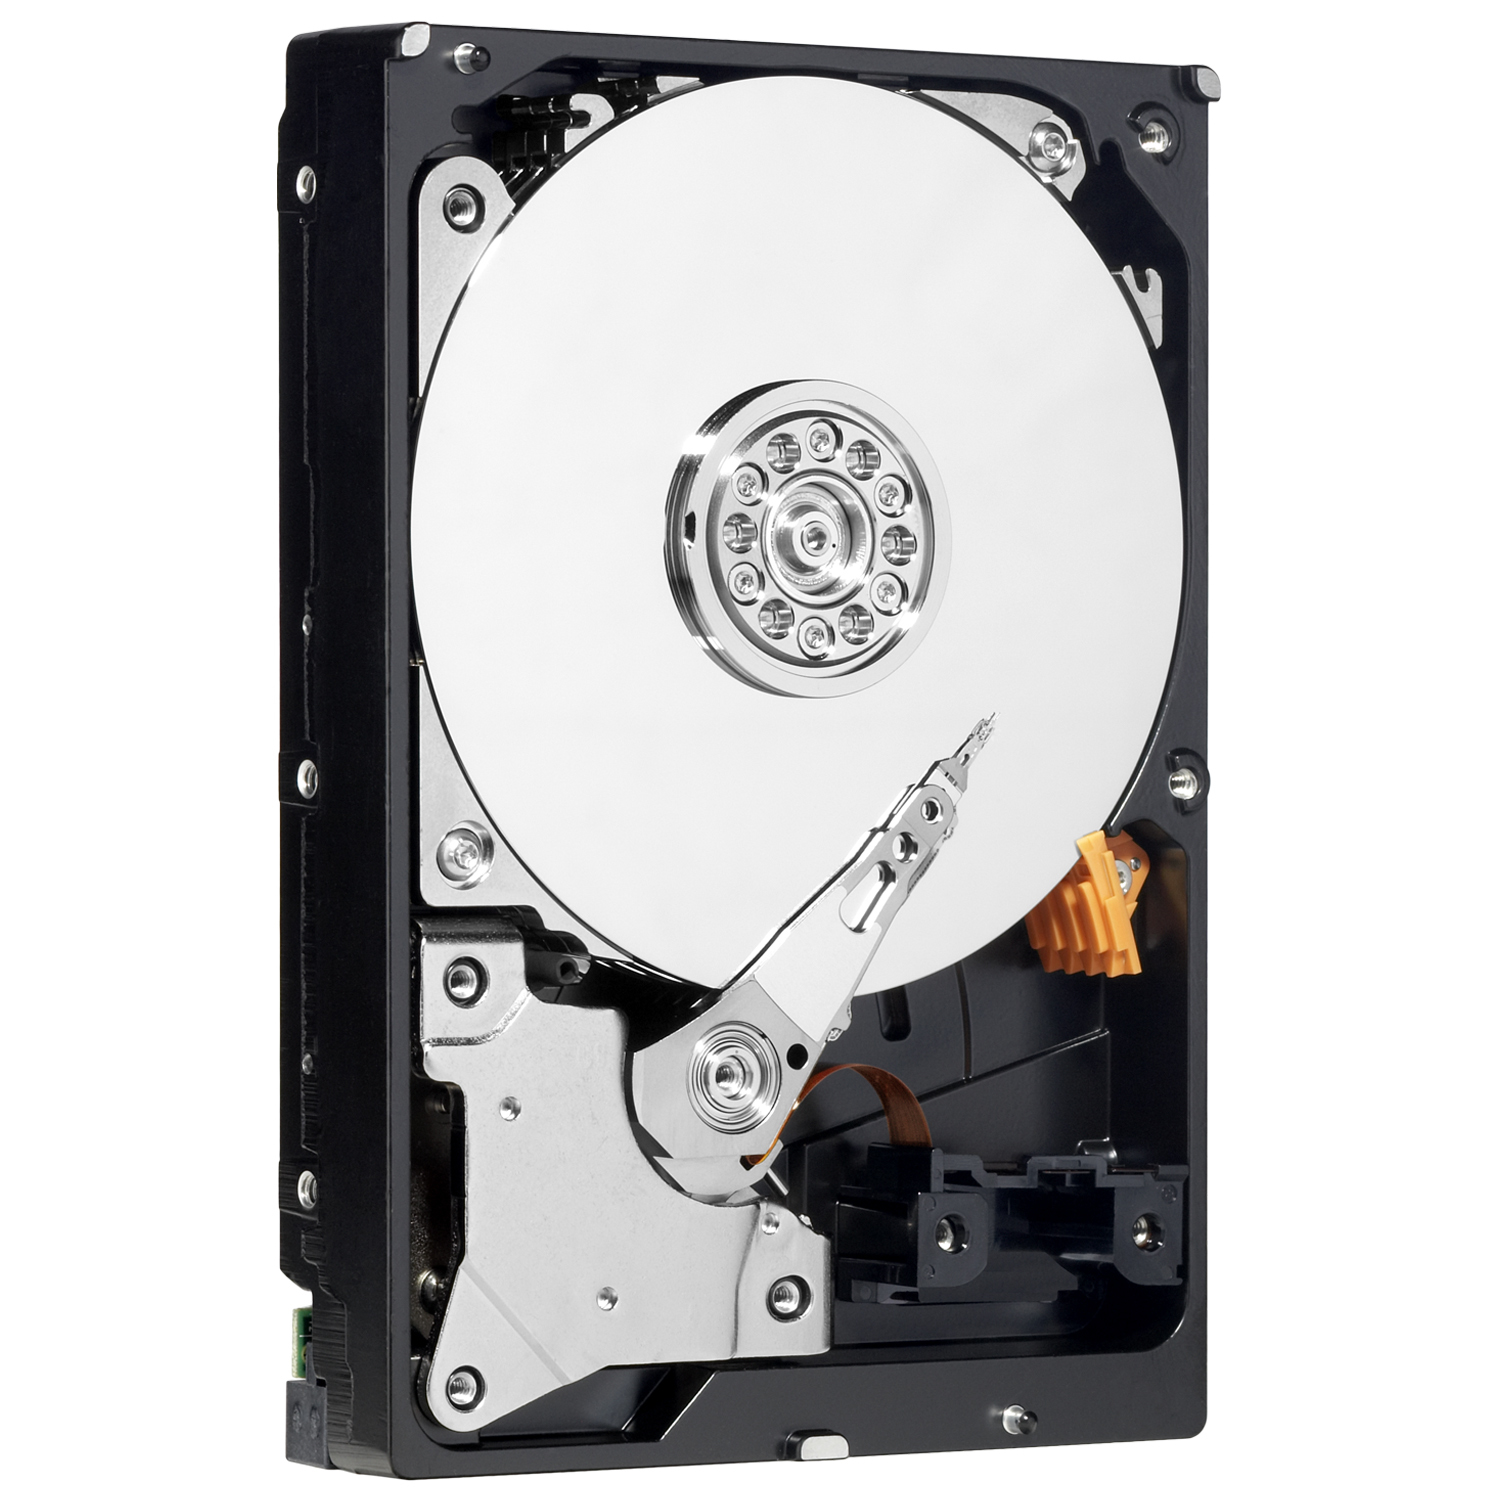 WESTERN DIGITAL AV-GP 2000GB SERIAL ATA III INTERNAL HARD DRIVE